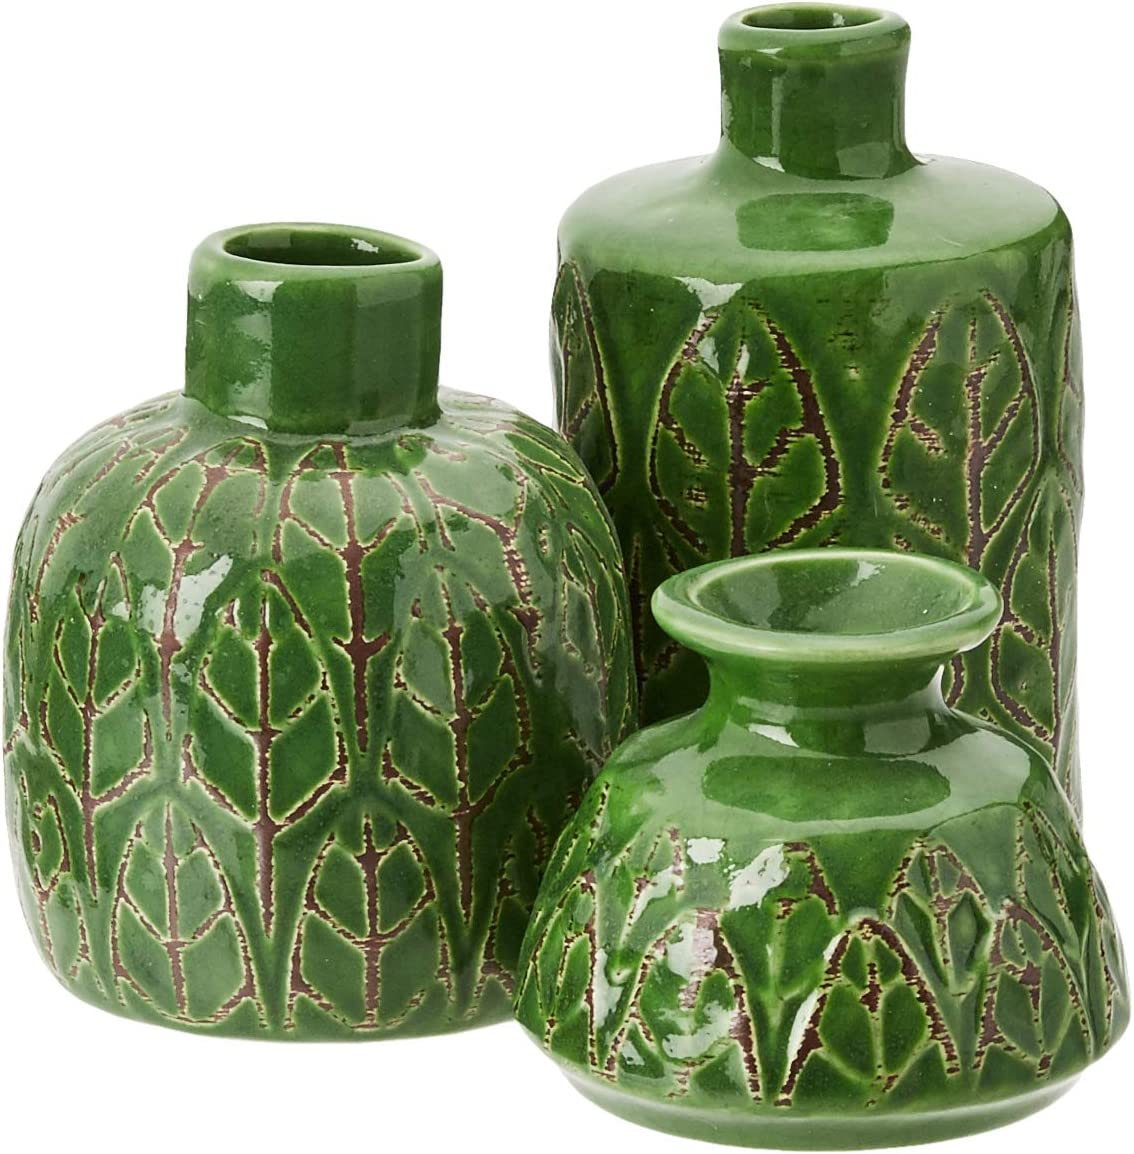 Creative Co-Op Green Embossed Stoneware Vases (Set of 3 Sizes)